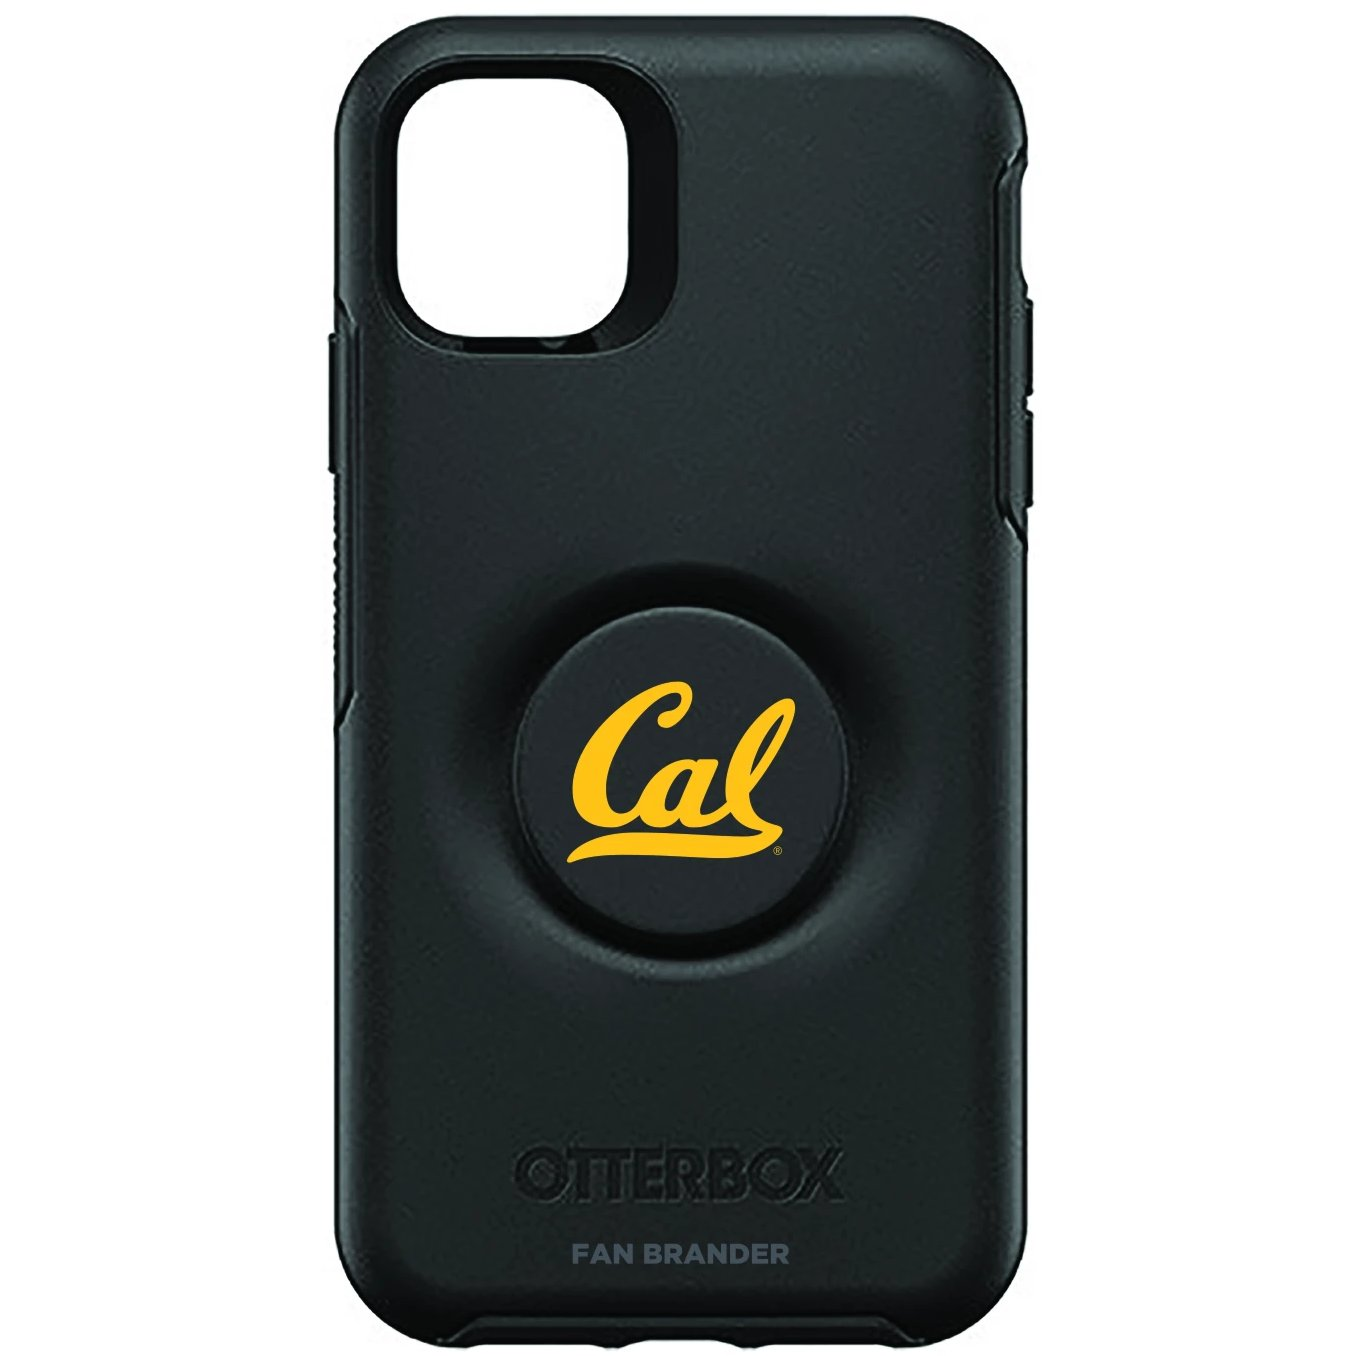 California Bears Otter + Pop Symmetry Case (for iPhone 11, Pro, Pro Max)